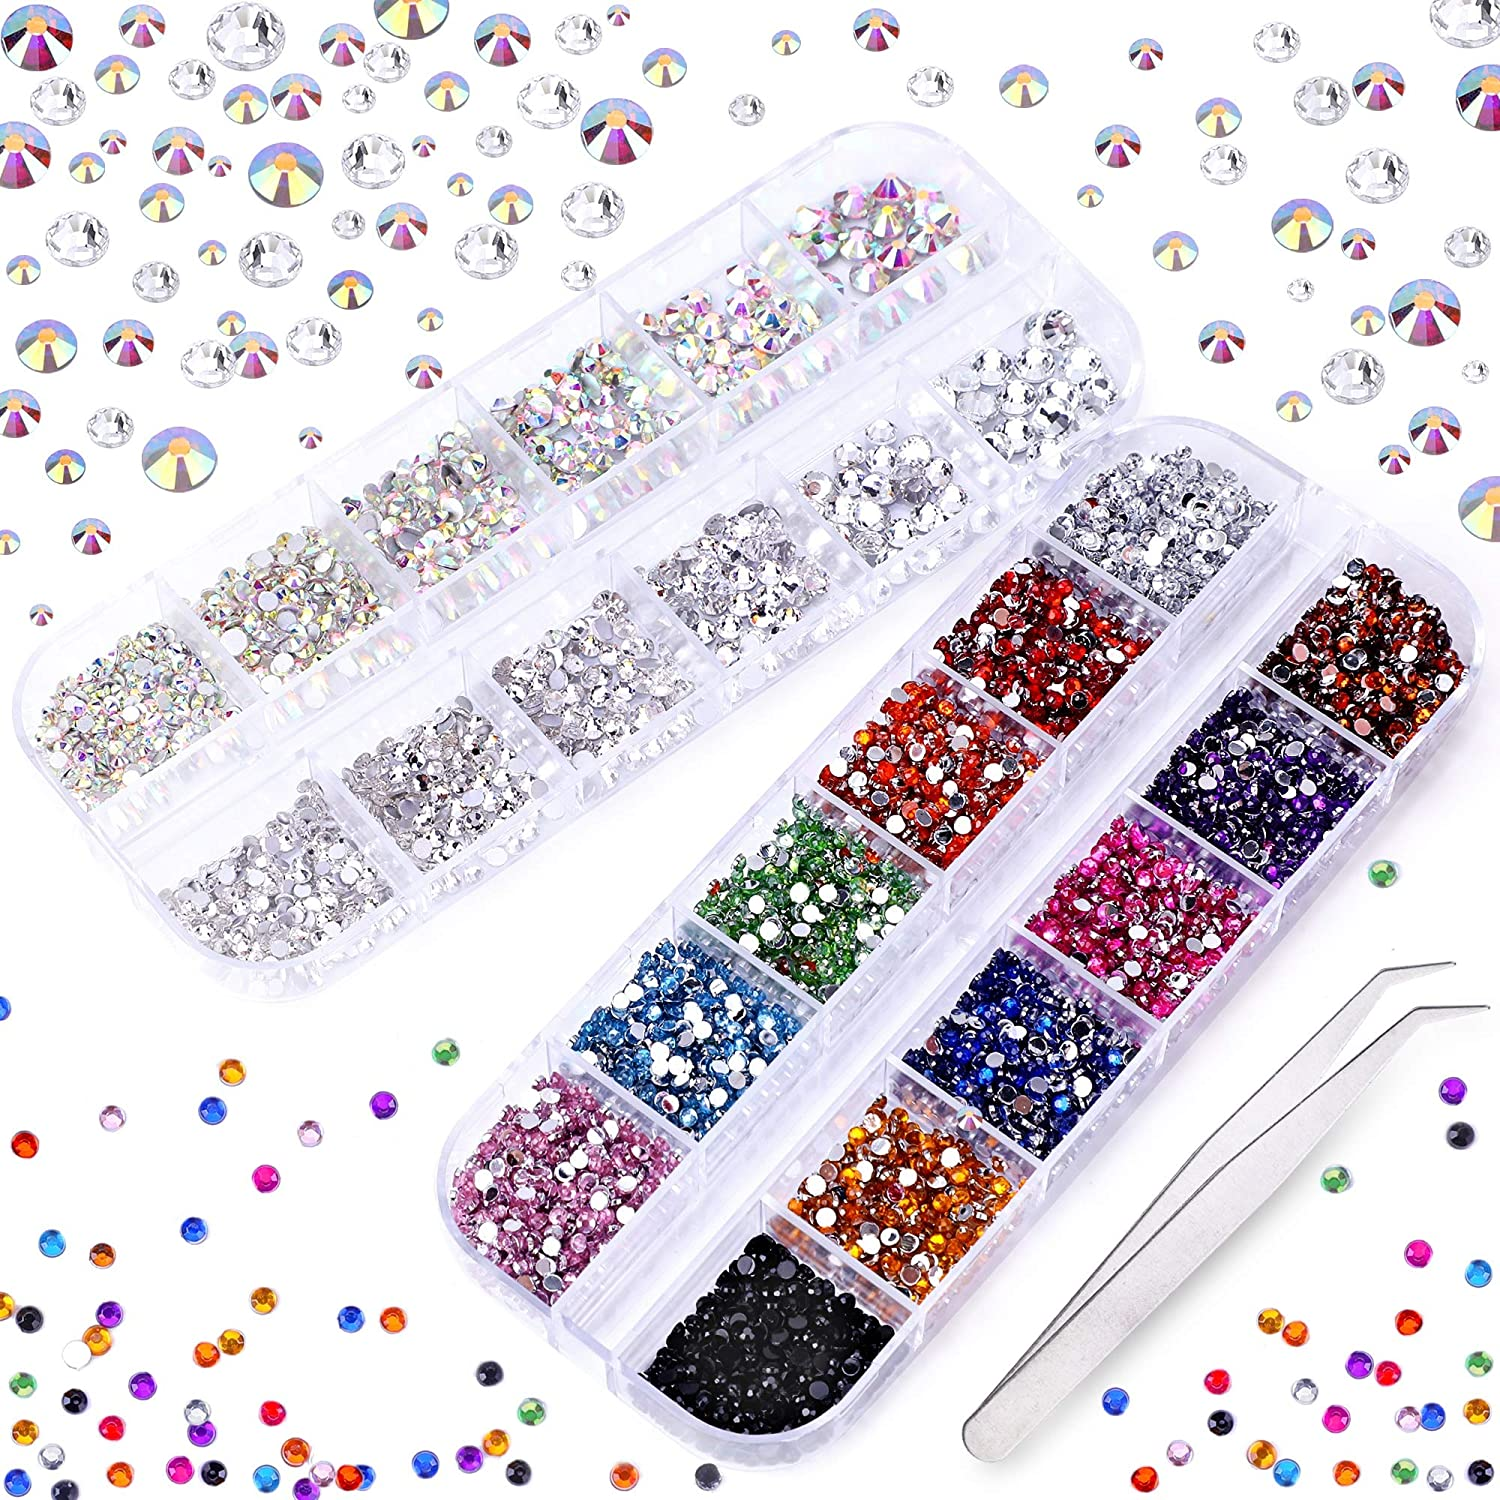 3000+ PCS Rhinestones for Craft, Phogary AB Rhinestones Flat Back 7 Sizes (1.5-5 mm) 13 Colors with Pick Up Tweezer for Crafts Nail Face Art Clothes Shoes Bags Phone Case DIY